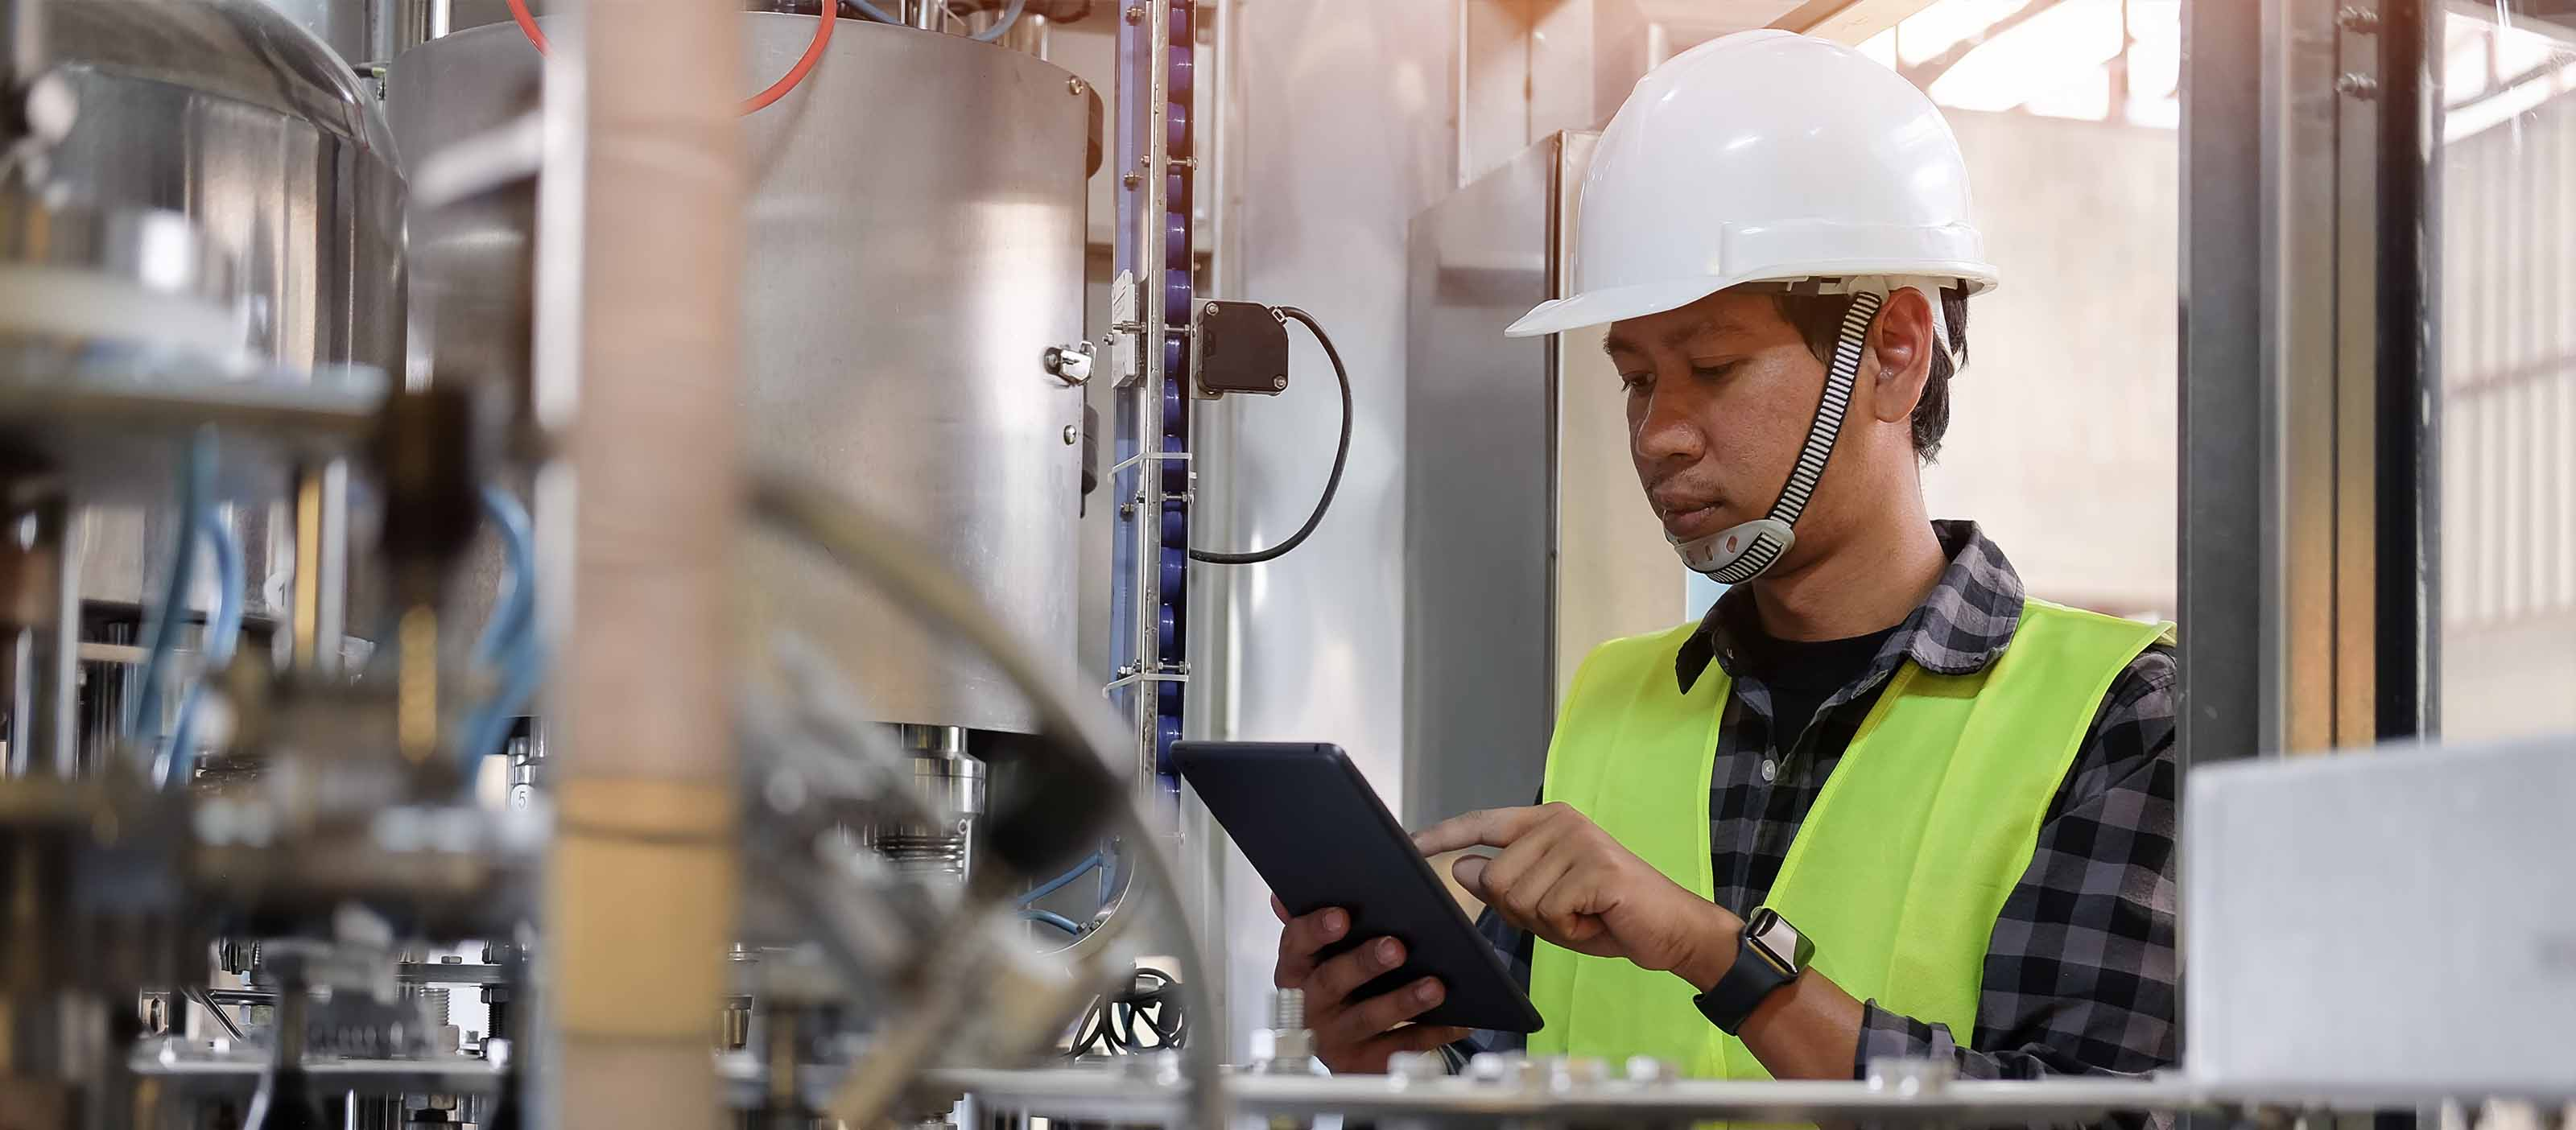 Industrial engineer checking operational data with GE Digital software